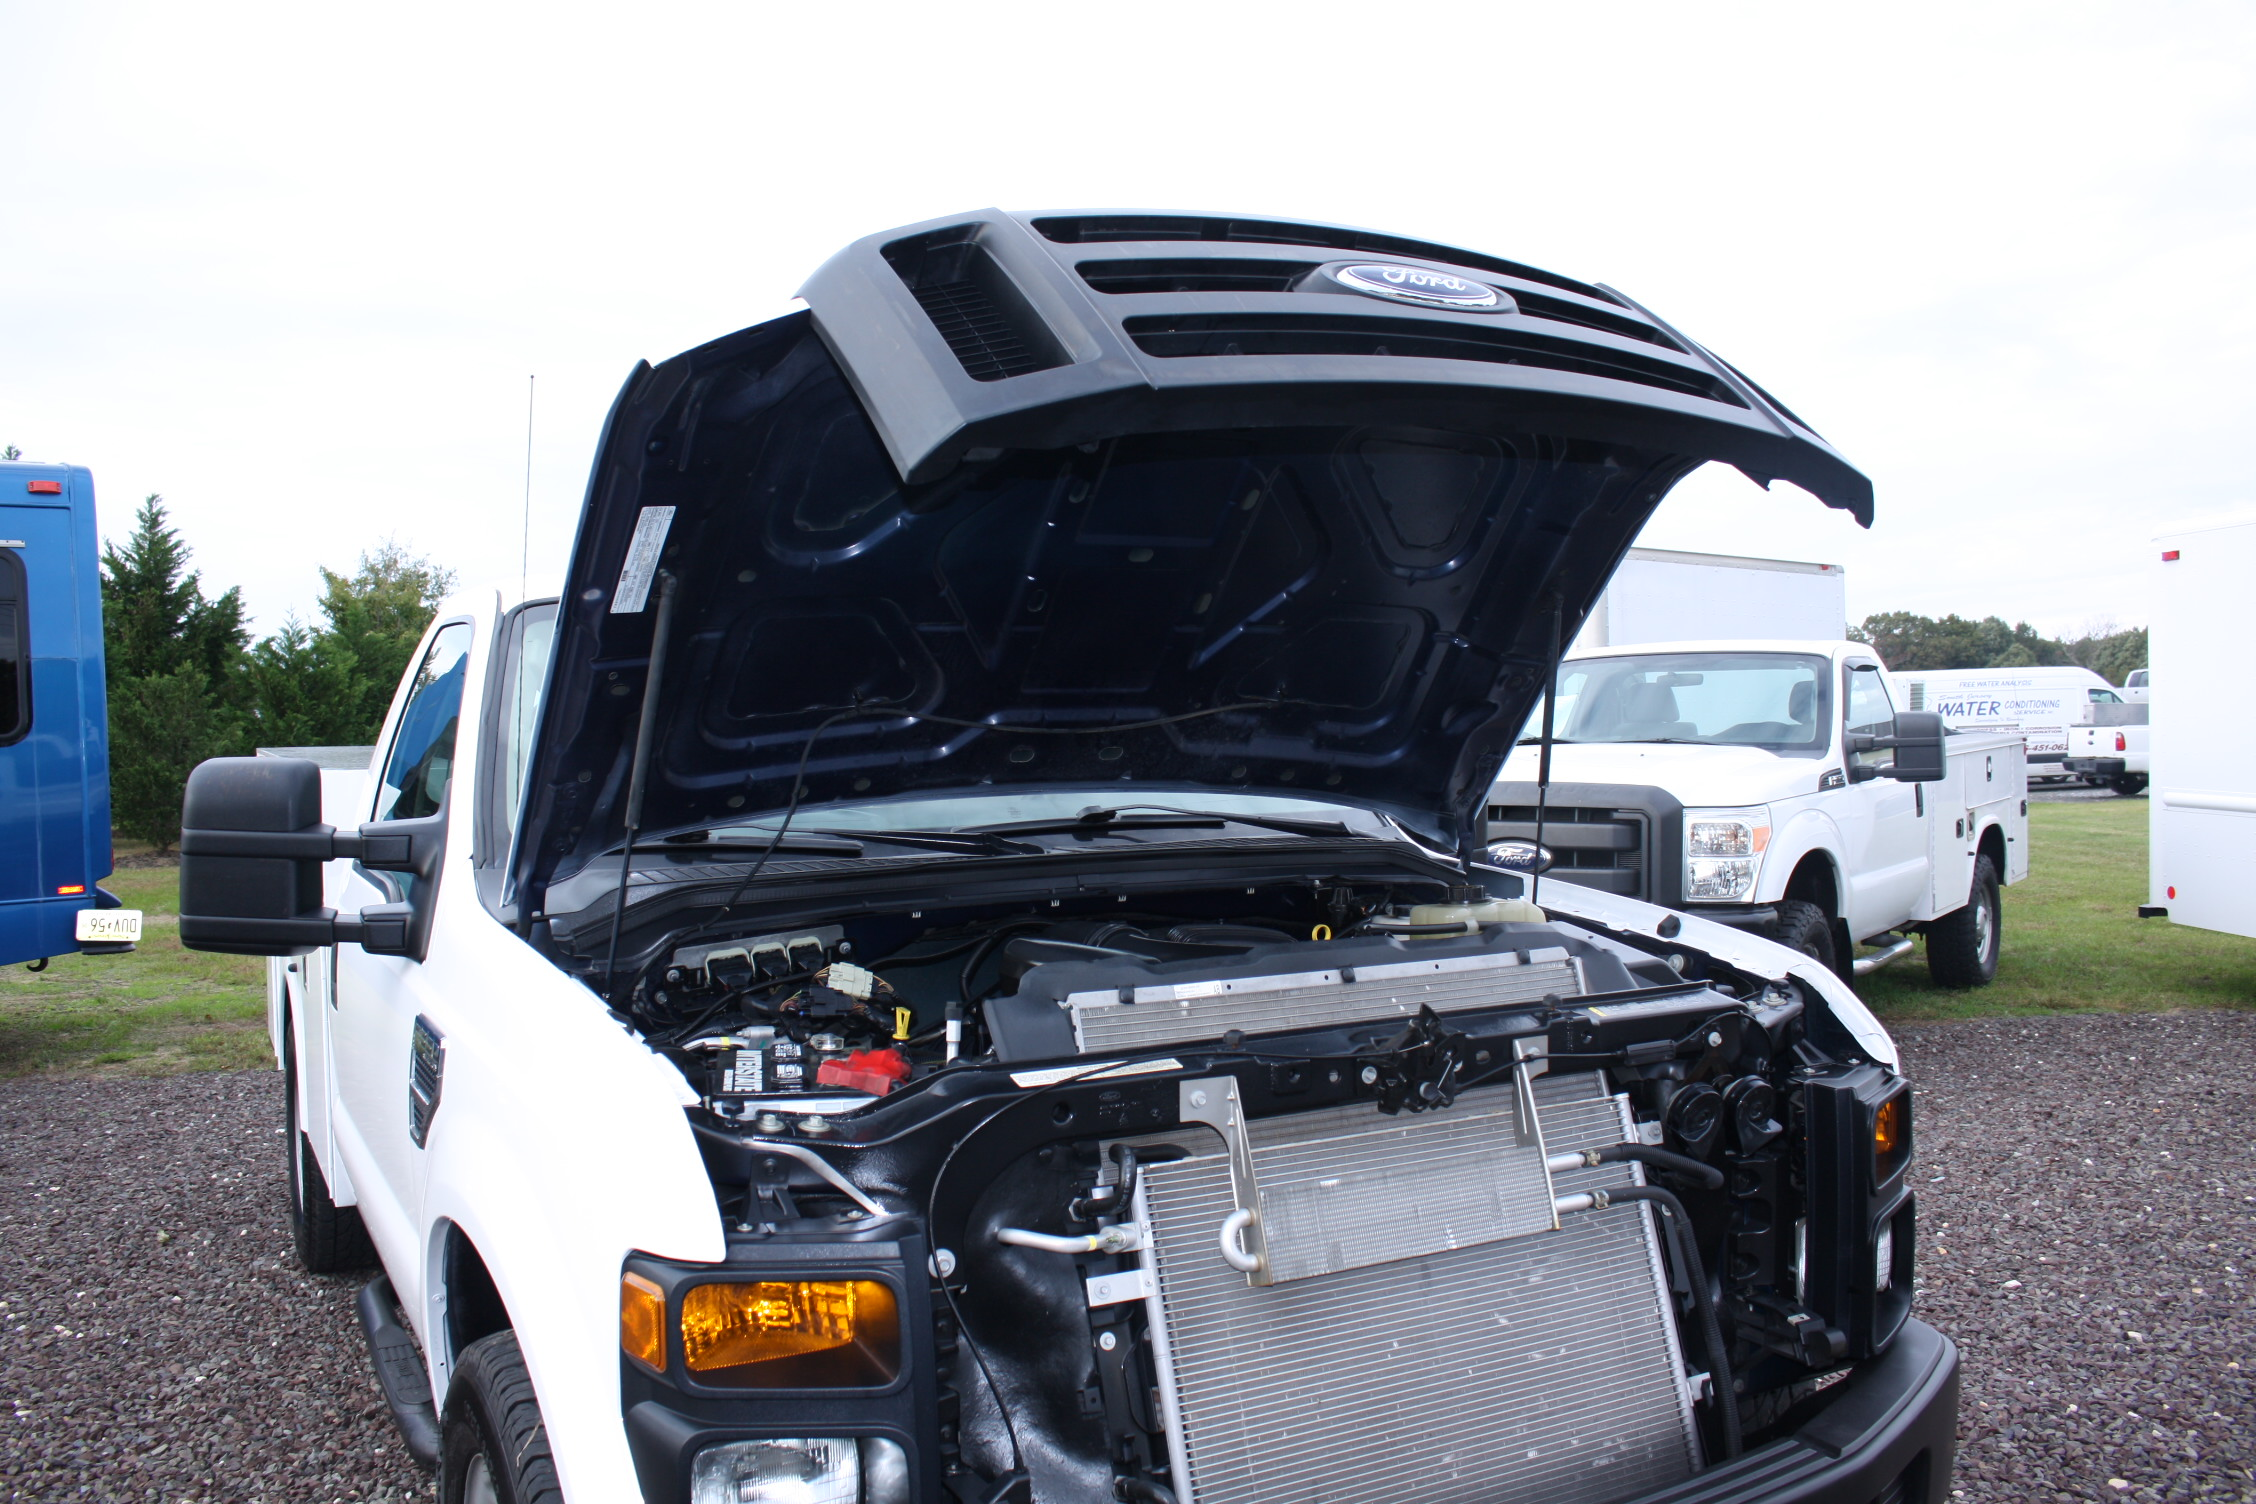 IMG 2183 - 2009 FORD F350 UTILITY TRUCK